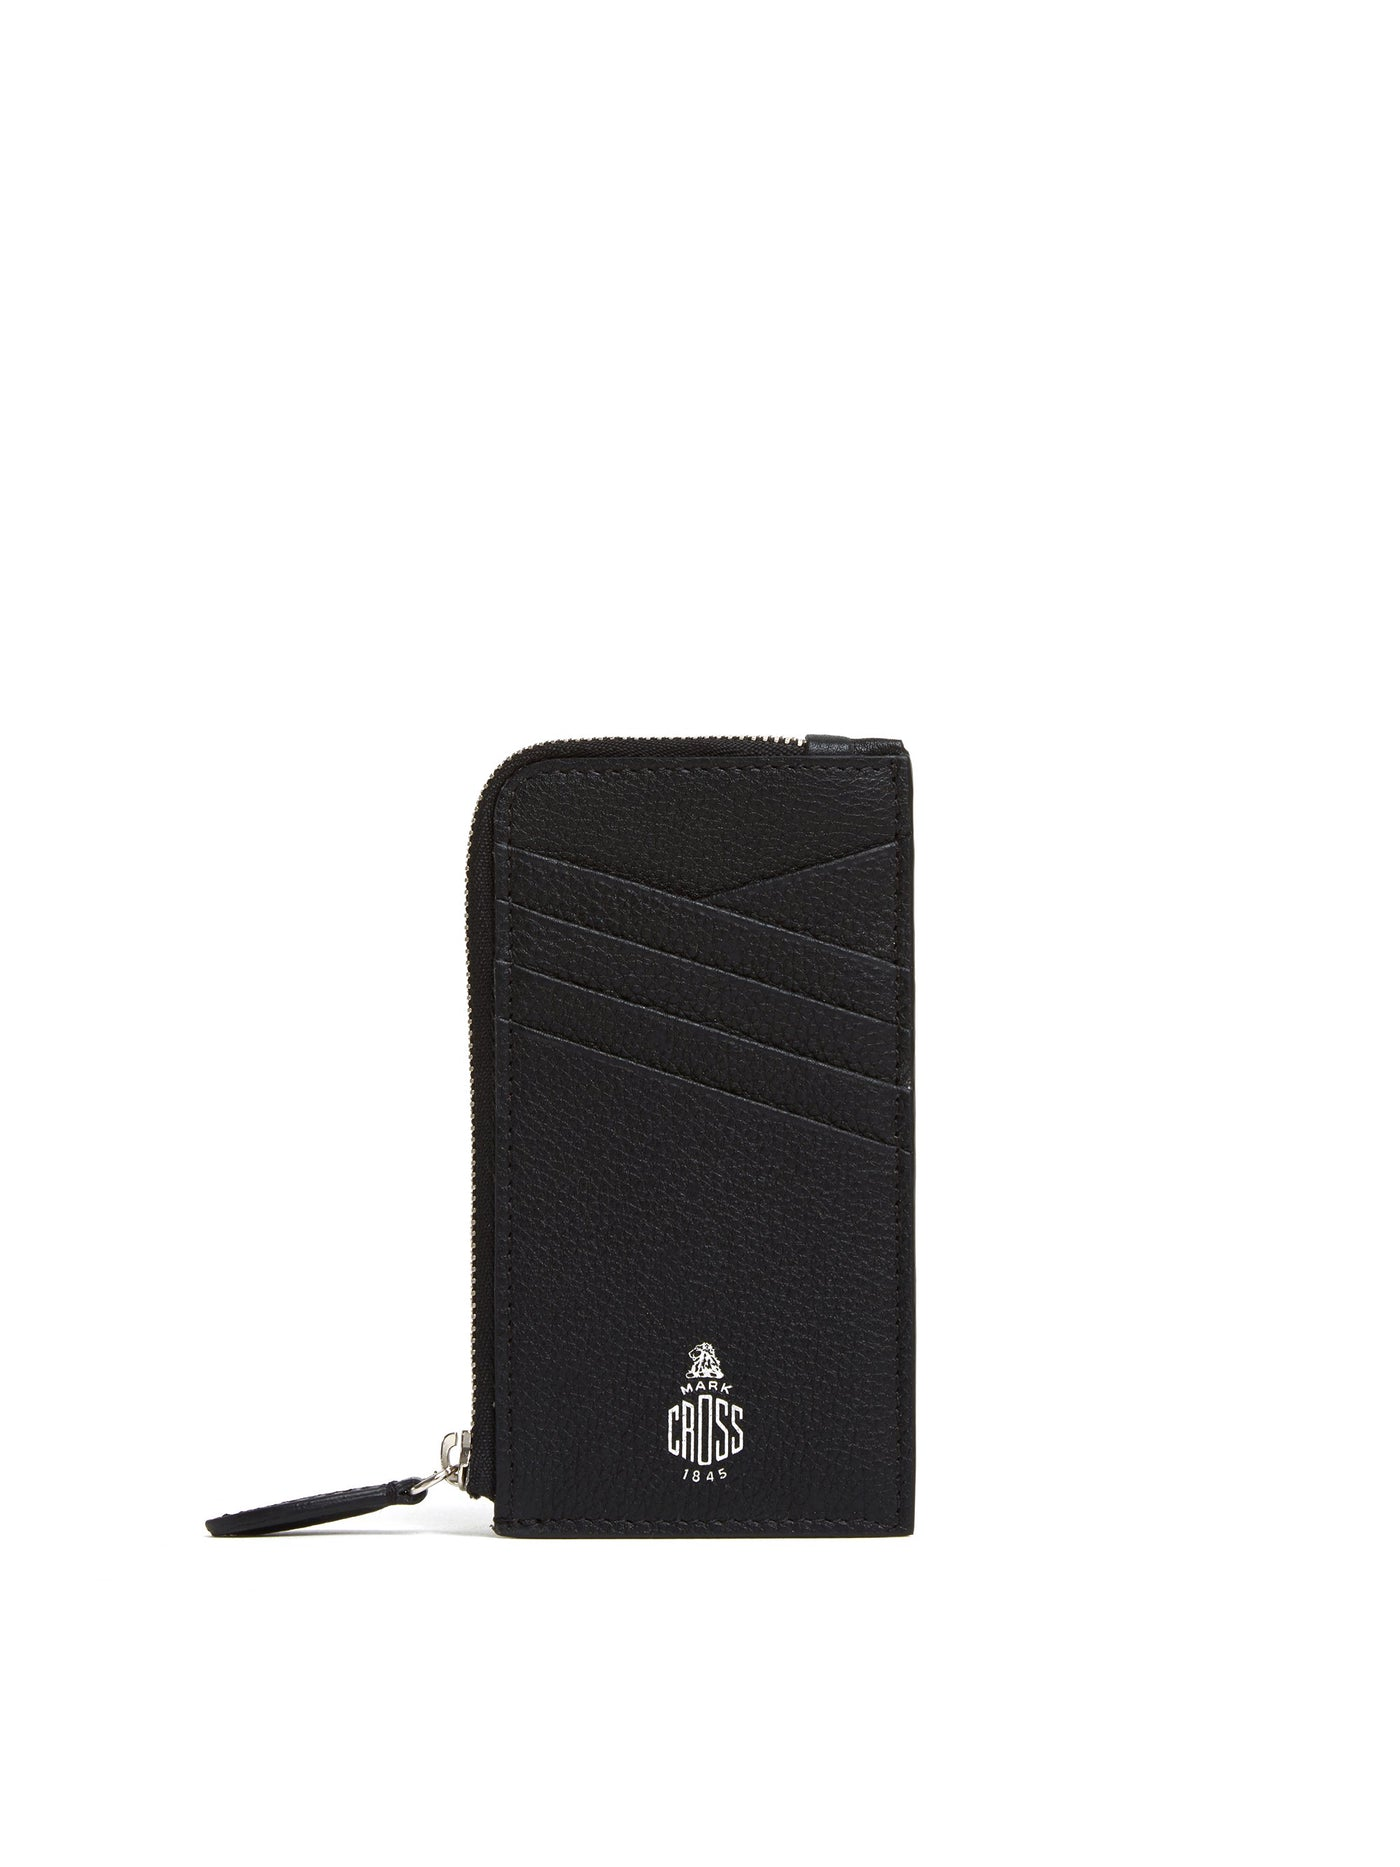 Mark Cross Leather Zip Card Case Tumbled Grain Black Front